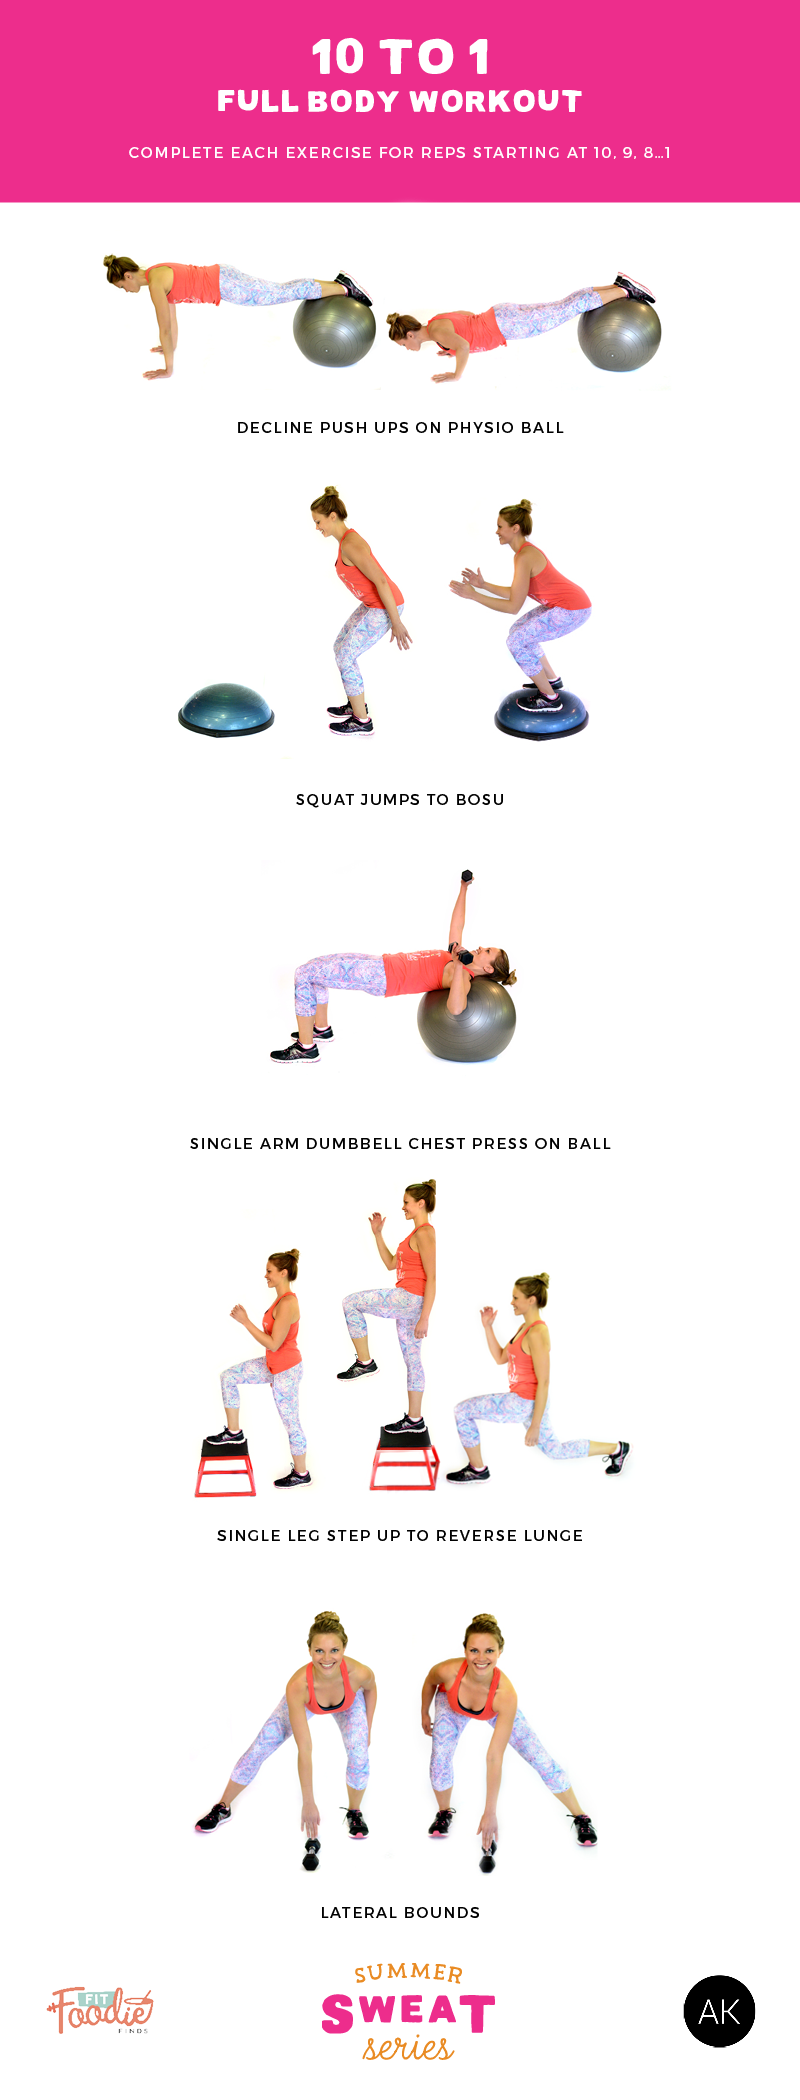 Full body workout collage